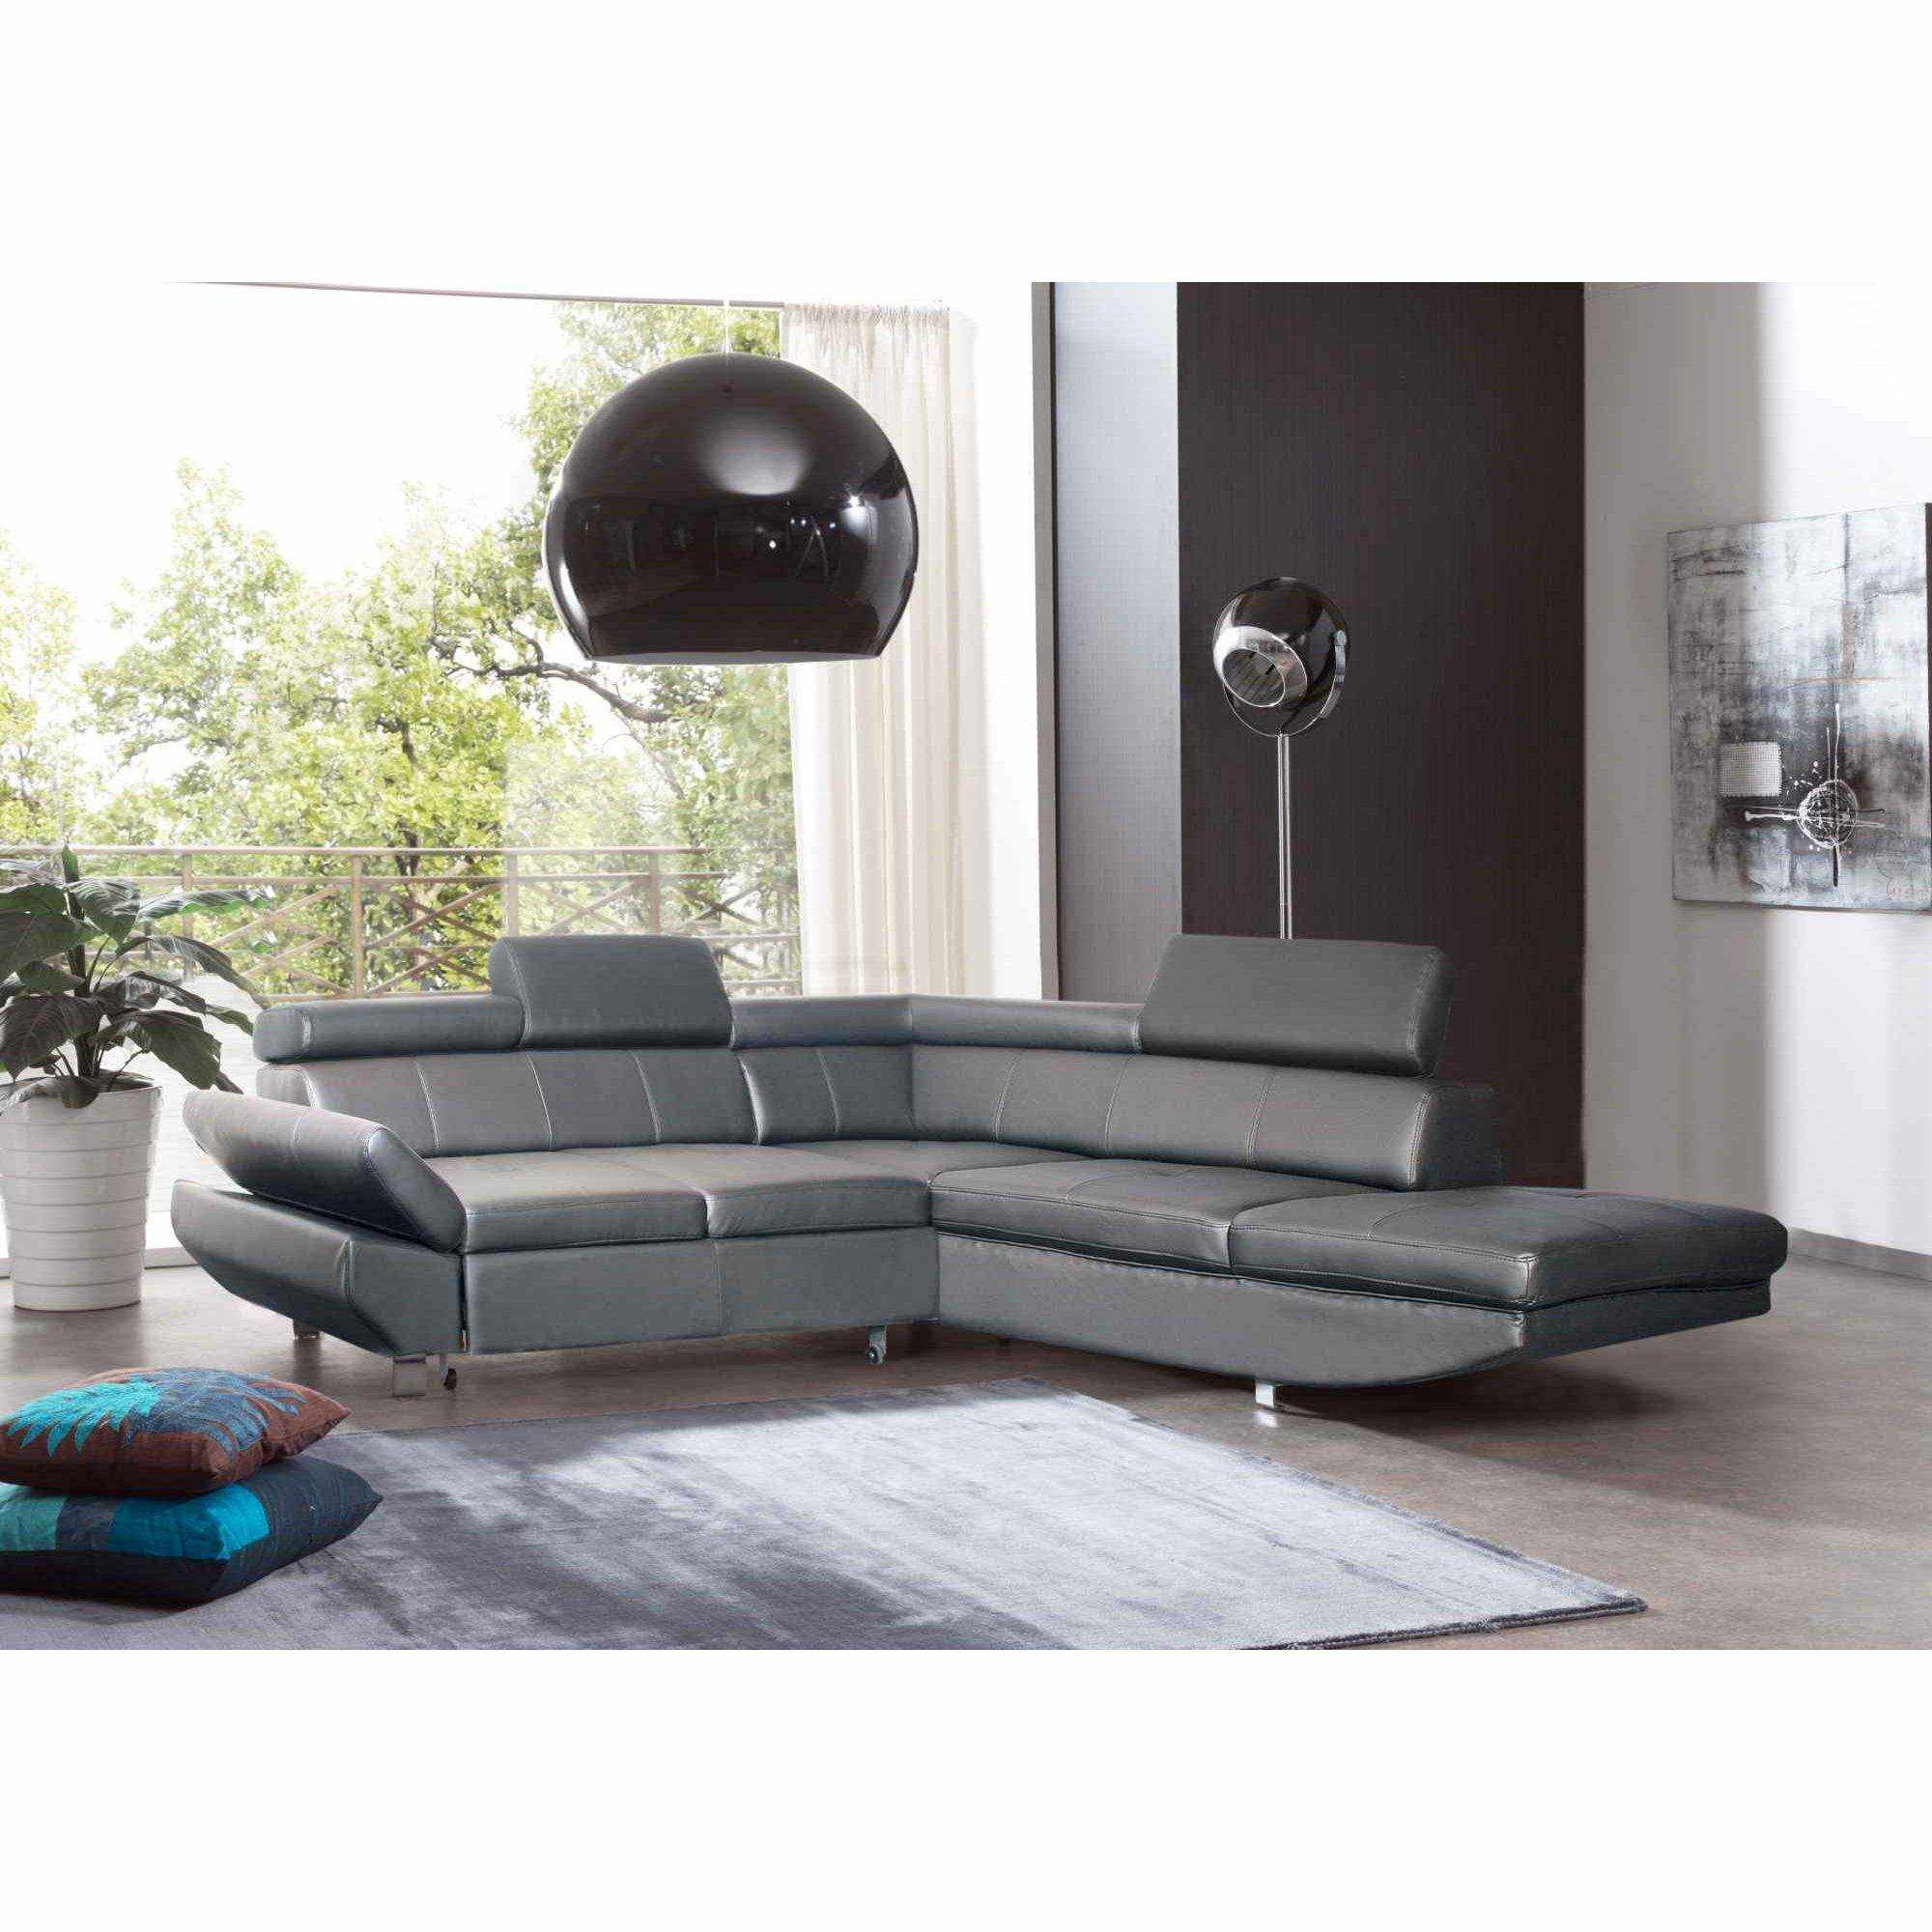 DECO IN PARIS Canape d angle design convertible gris luca luca